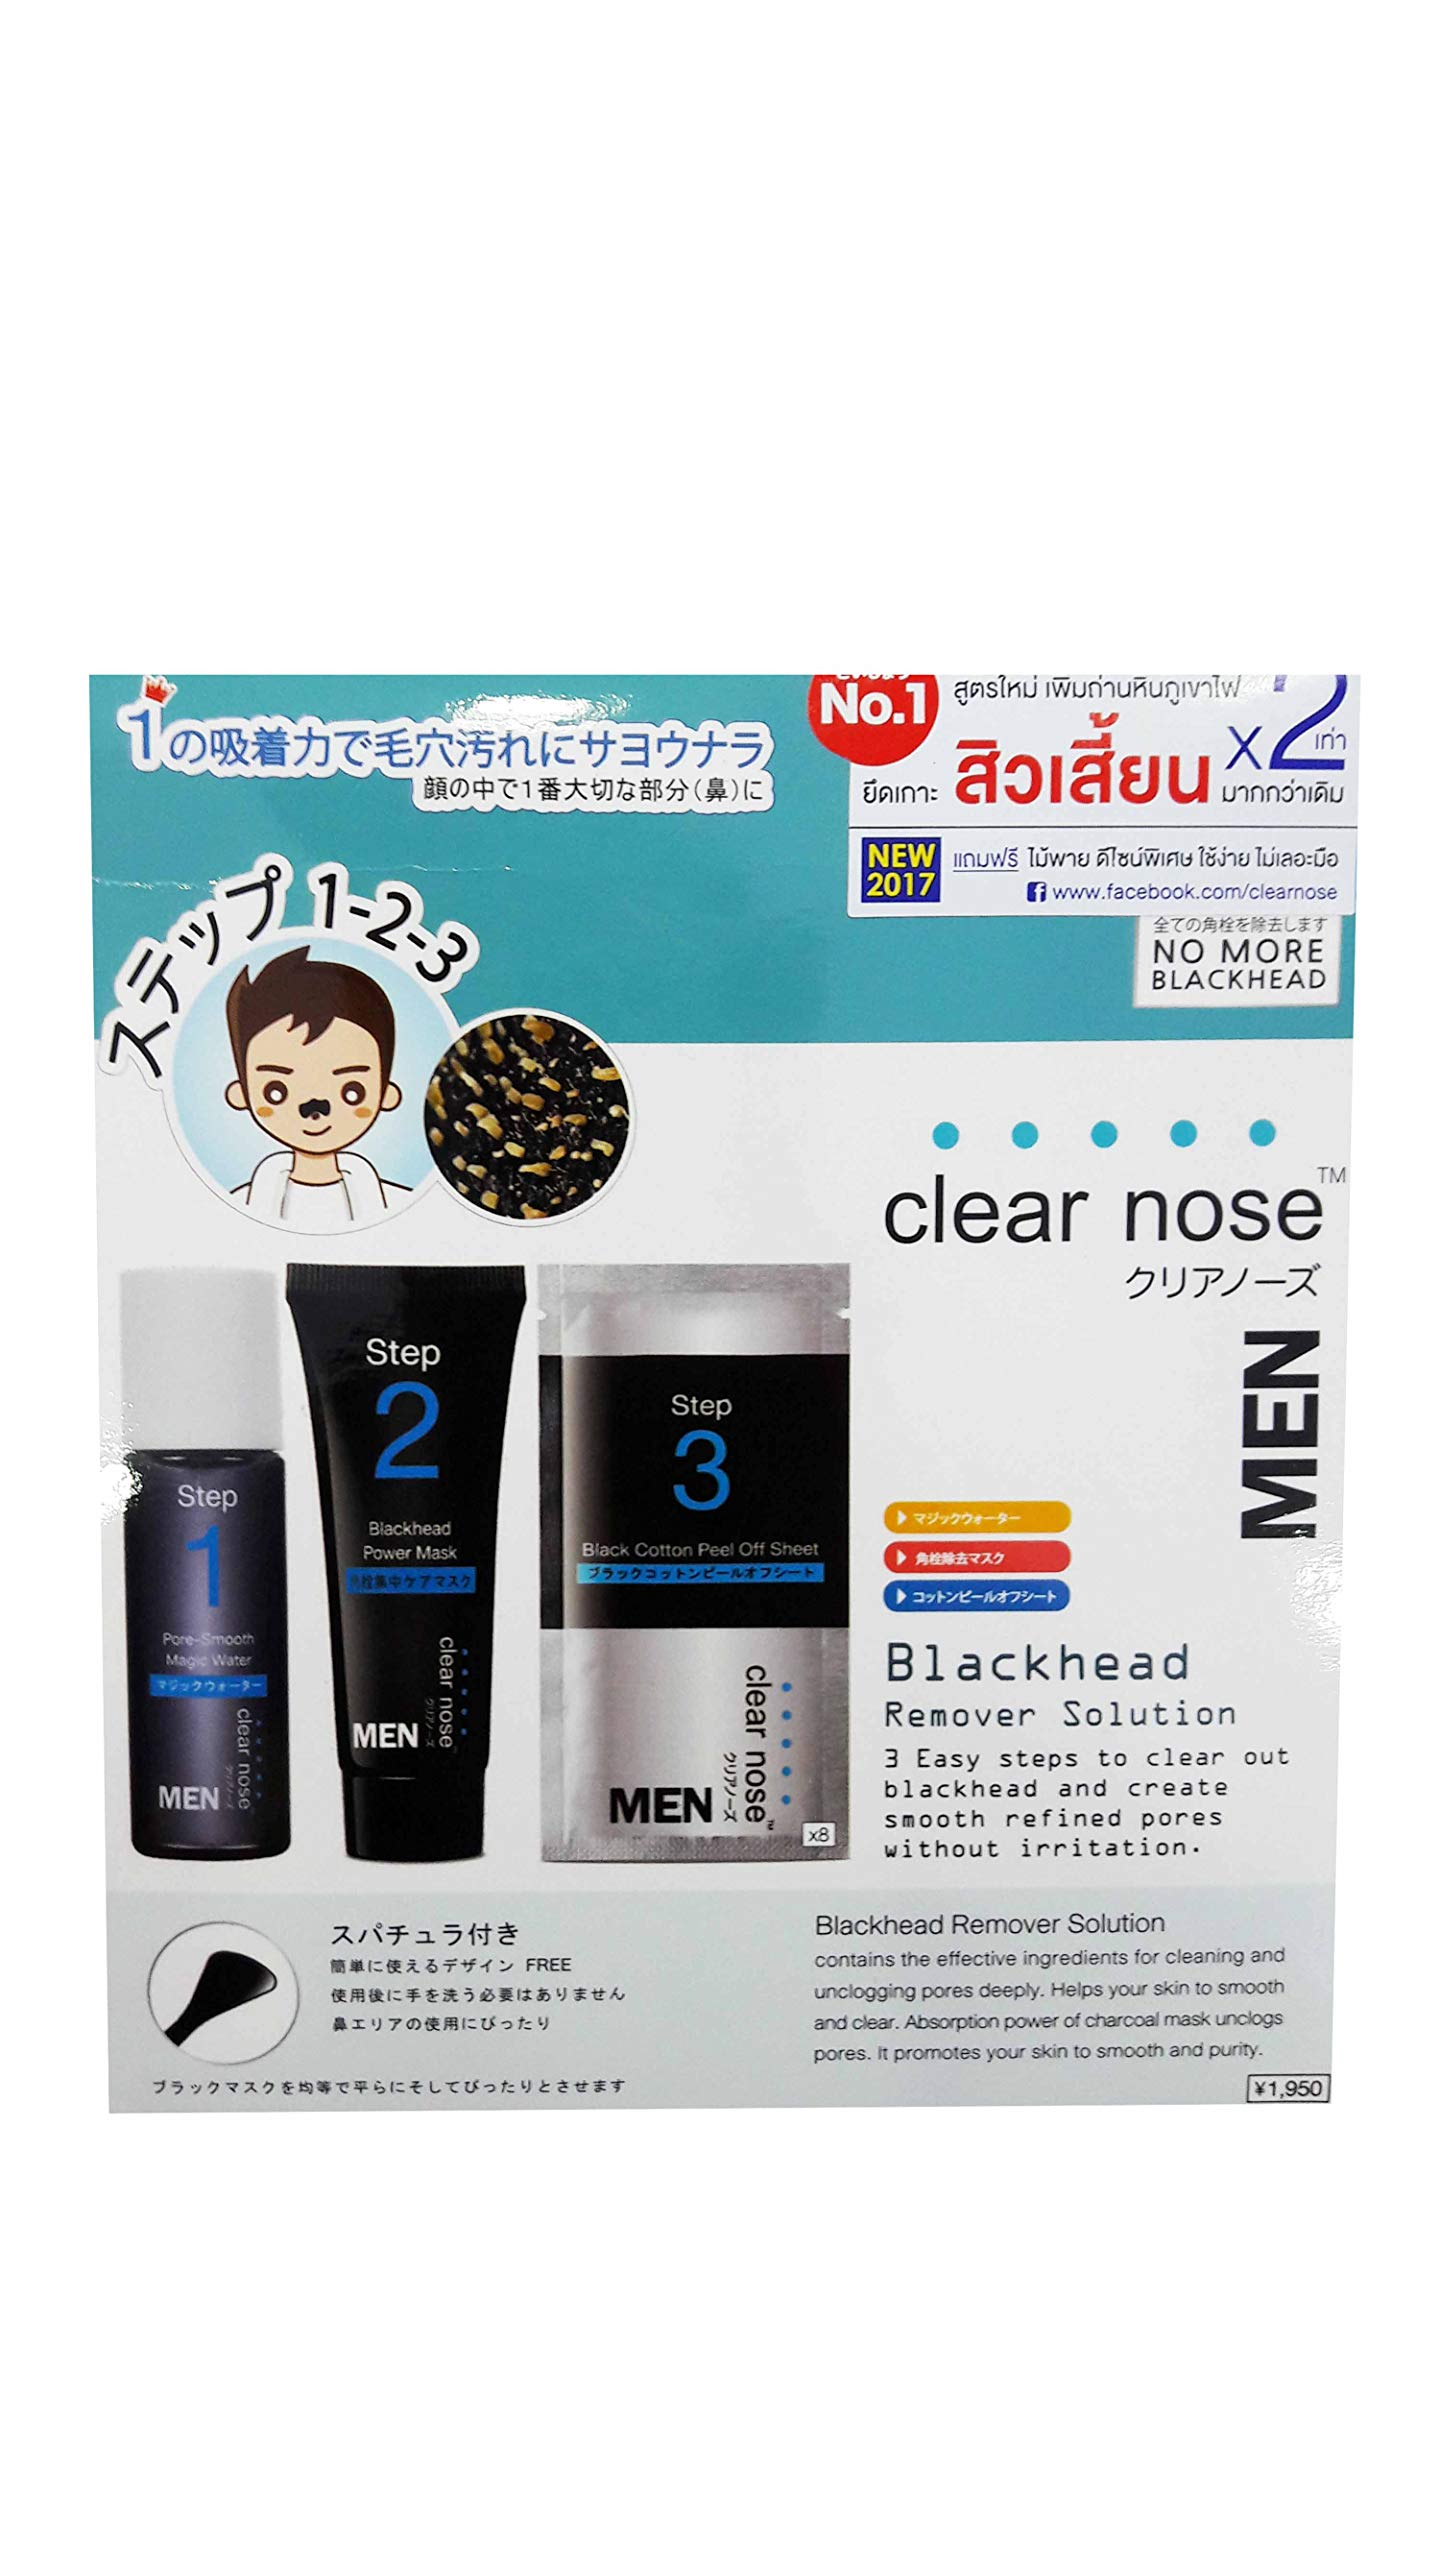 2 packs of Clear nose MEN set, 3 easy steps to clean refined pores for men, no more blackhead (magic water: 15 ml, blackhead power mask: 20 ml, cotton peel off sheet: 8 pcs. / pack).